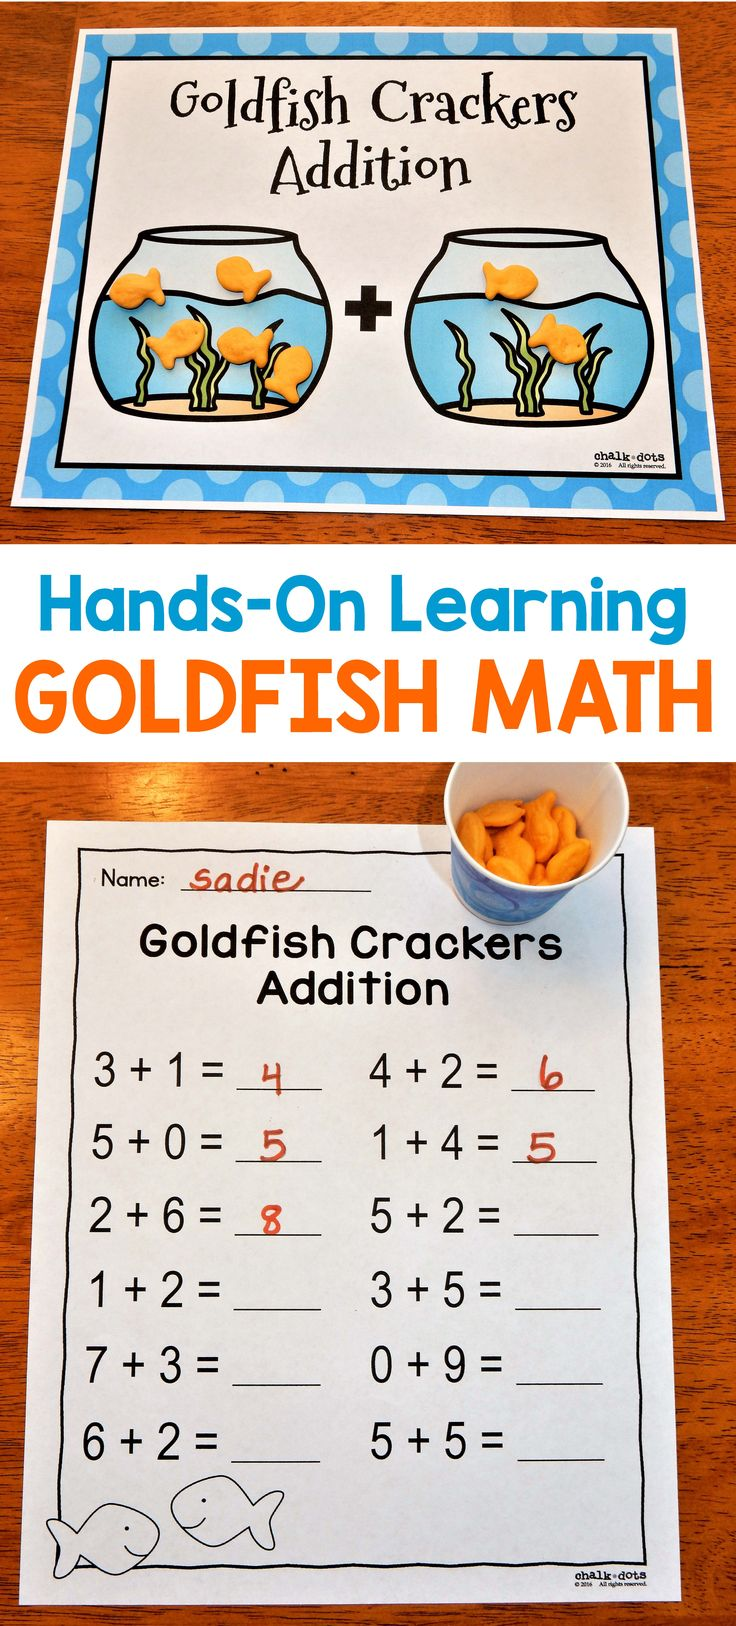 """Make math enjoyable for your students and help them visualize the problems with this fun """"Goldfish Math"""" packet! This is a great resource to help children practice both counting and adding to ten. I have included a variety of activities so you can pick the ones that best fit your students' needs."""